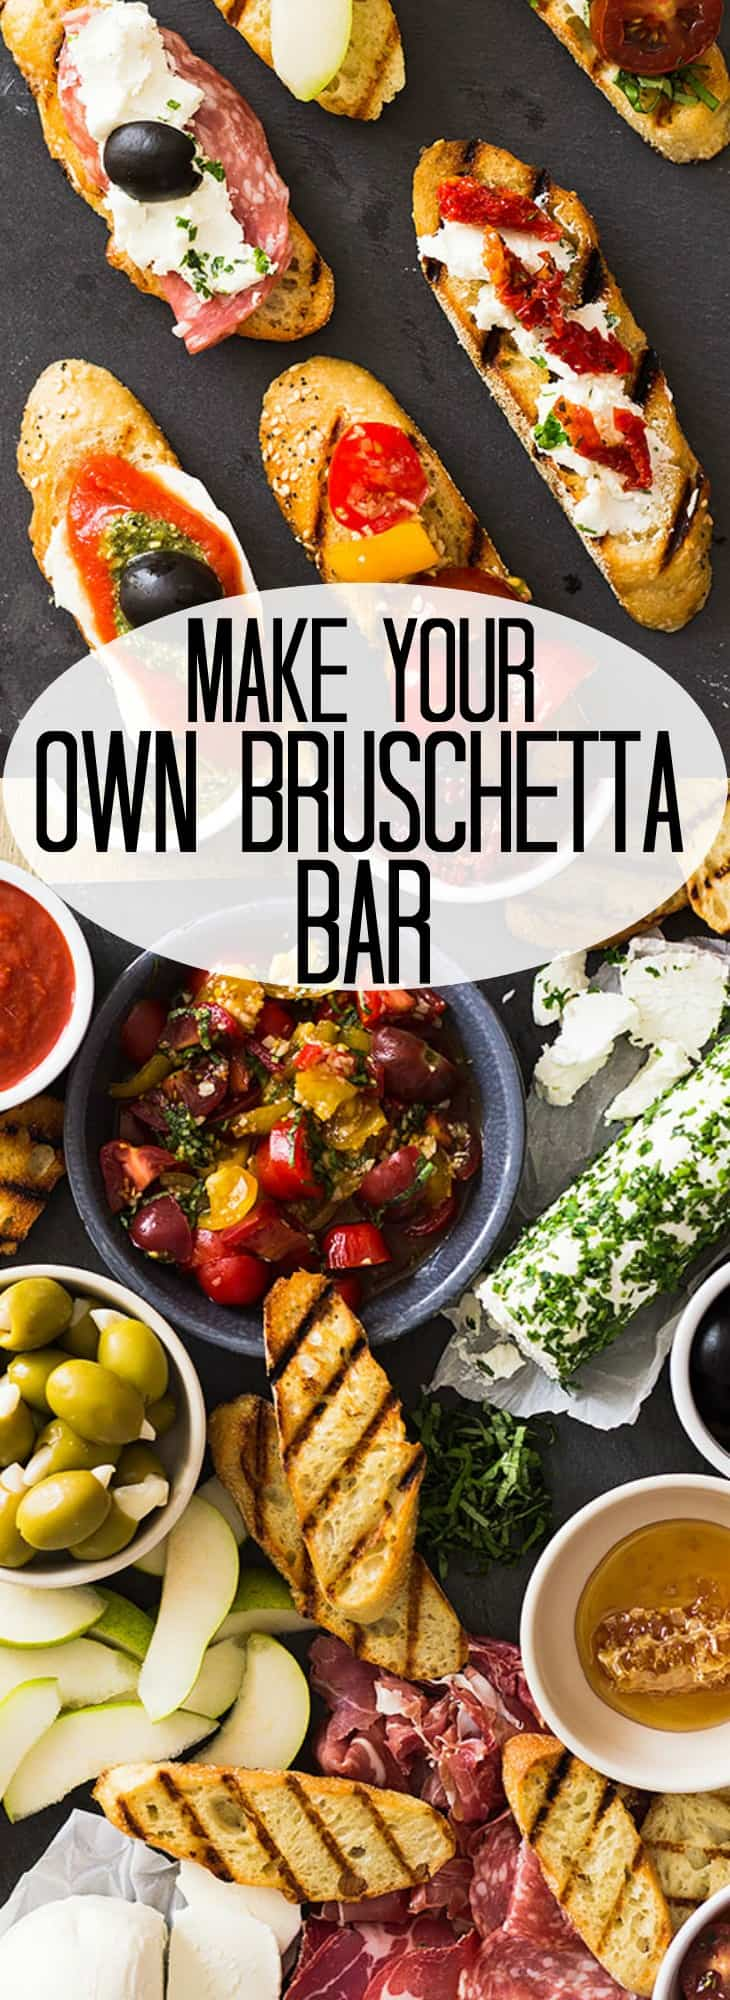 This Make Your Own Bruschetta Bar will be the star of the party. It's easy to put together and there are endless combinations to make! | www.countrysidecravings.com